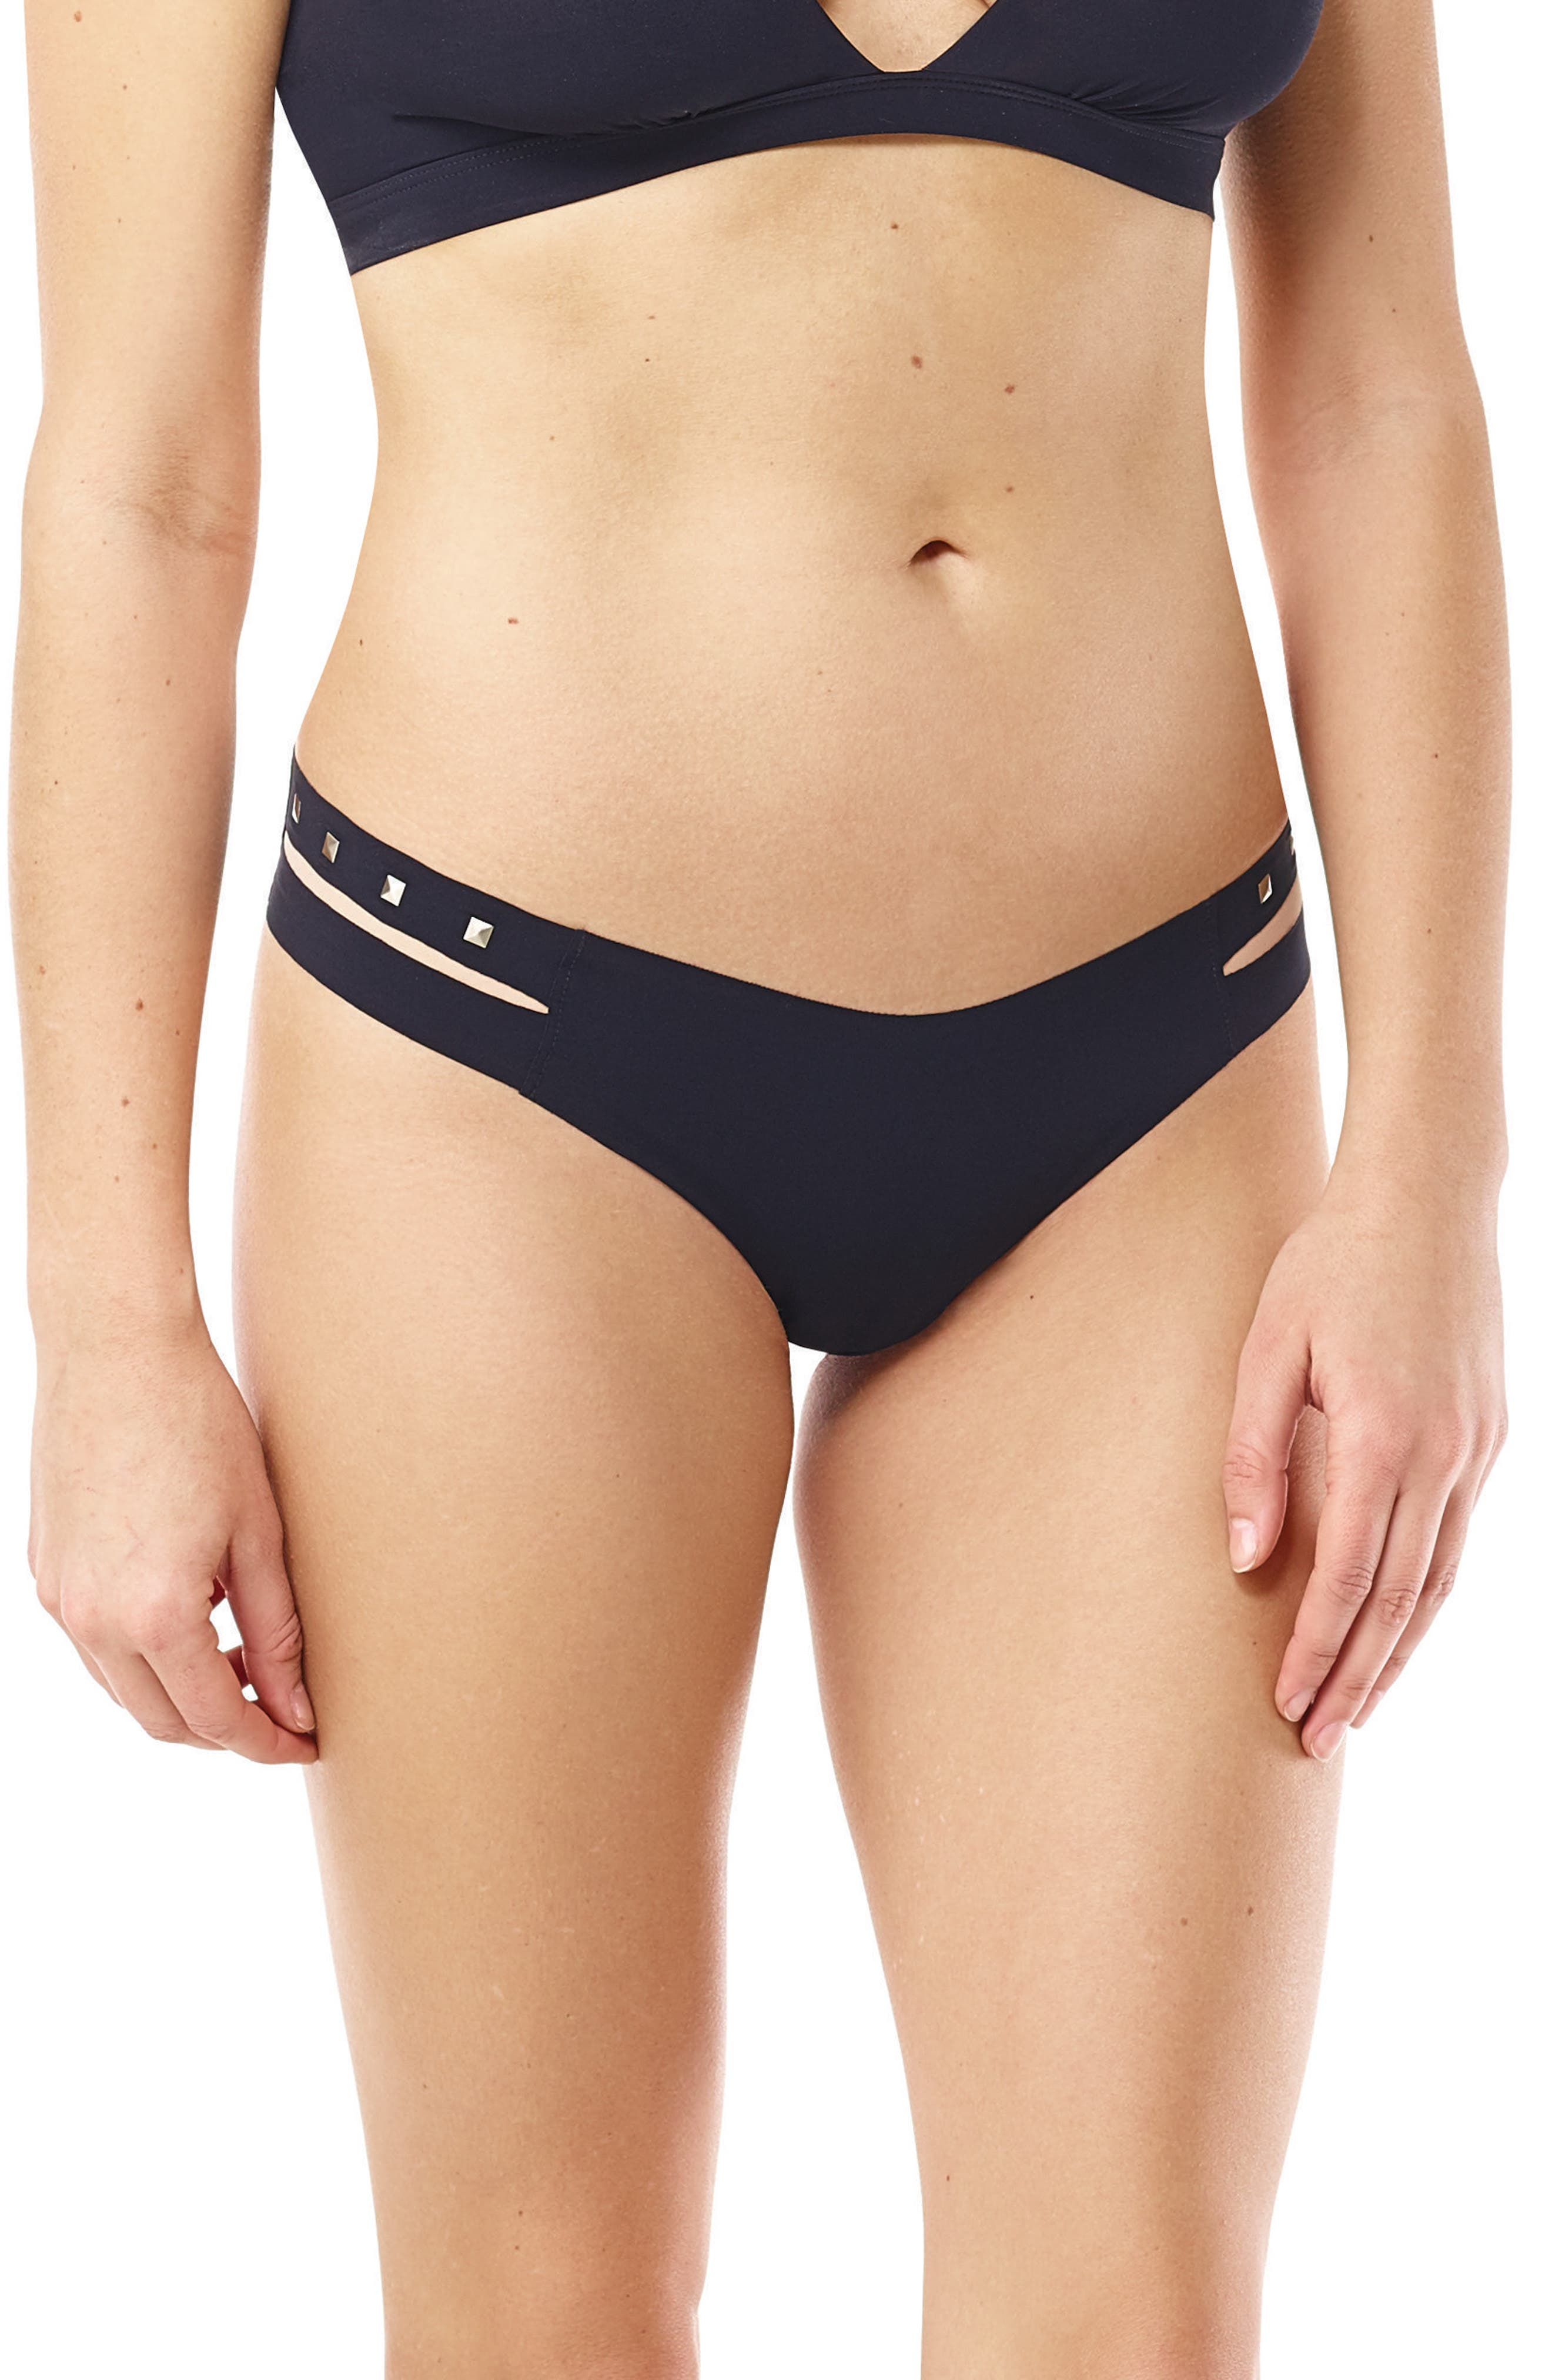 Stripped Studded Thong,                             Main thumbnail 1, color,                             Black